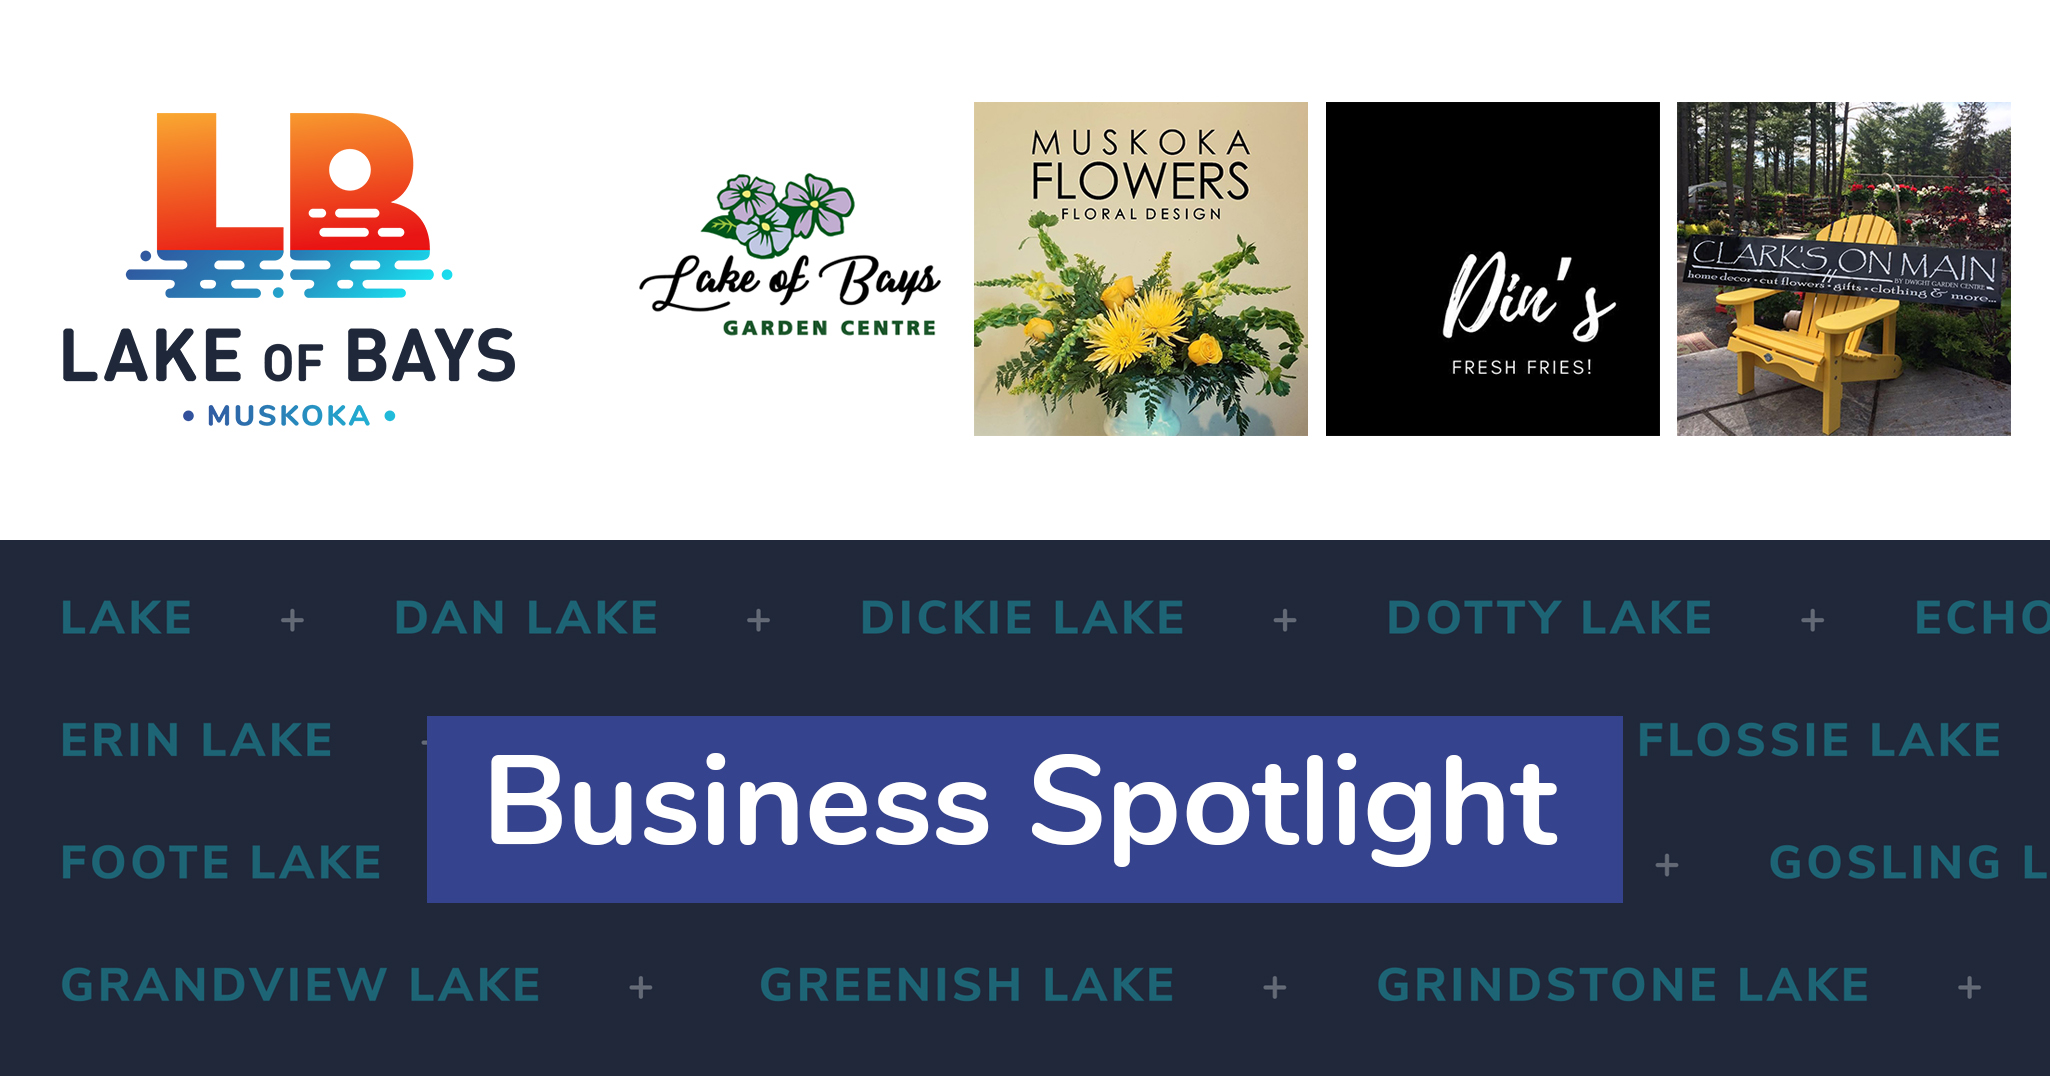 Business Spotlight - LOB Garden Centre etc